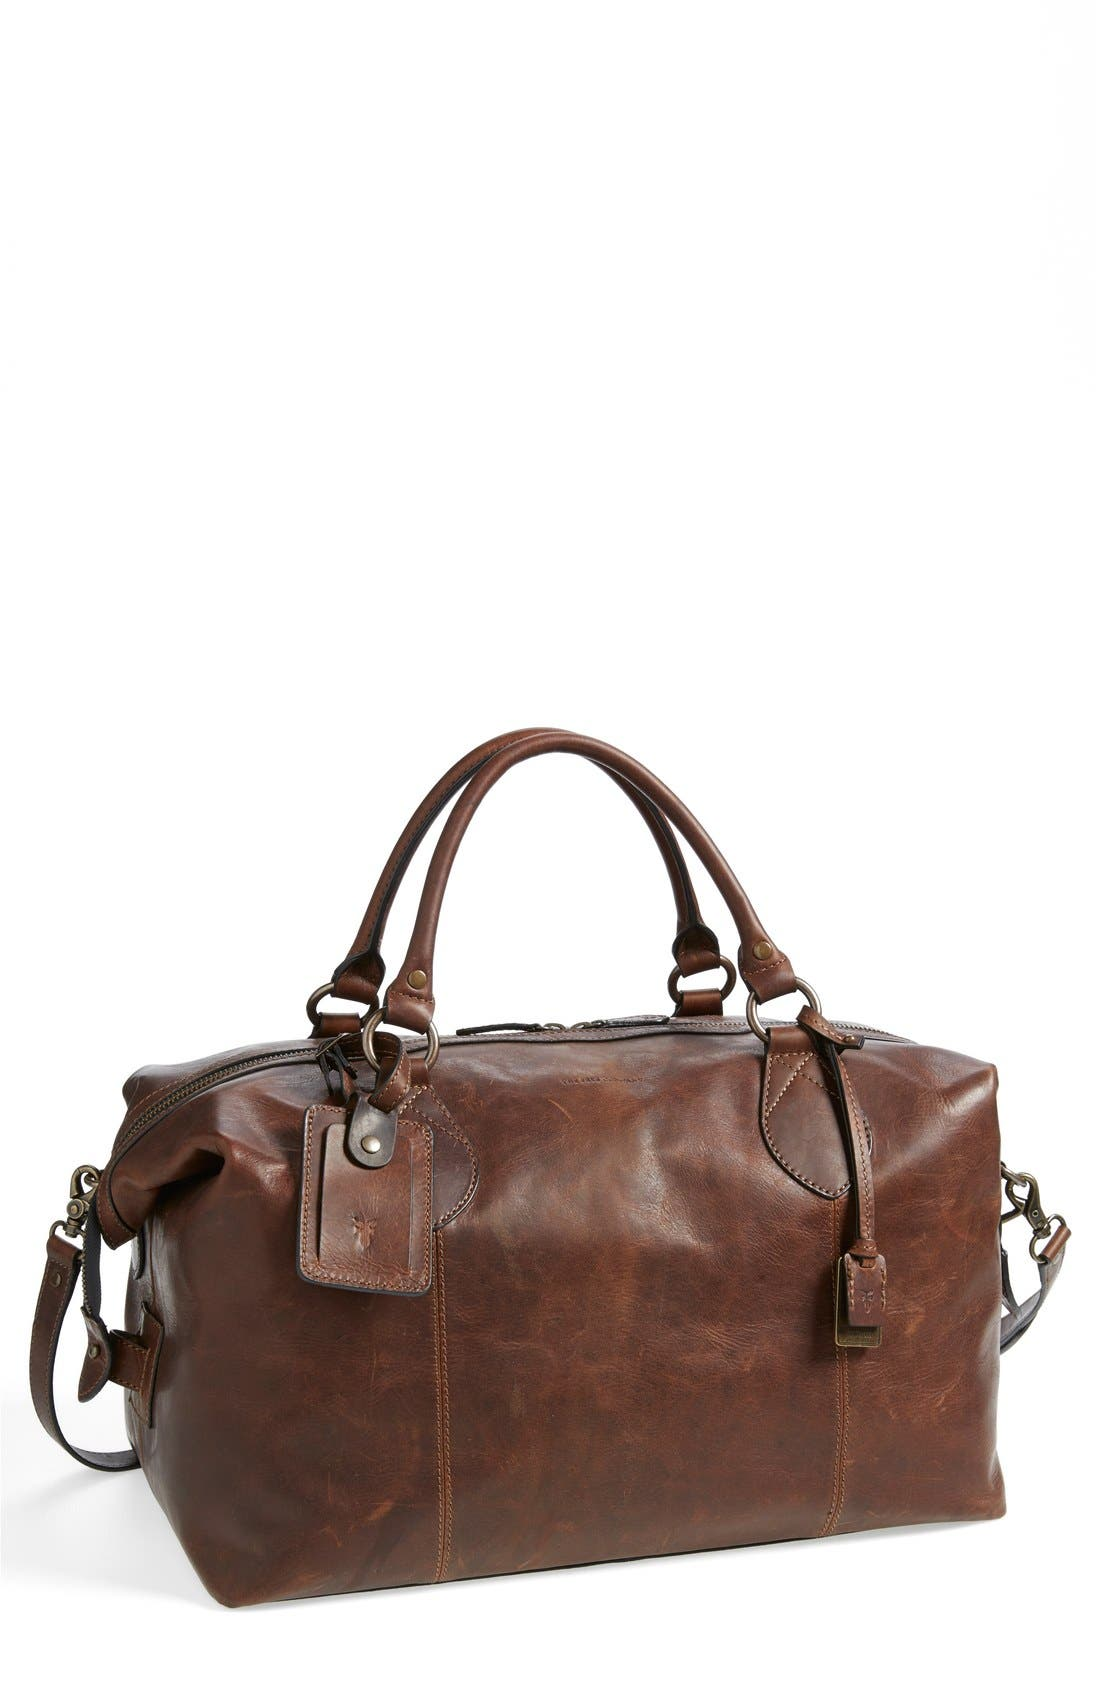 FRYE 'Logan' Leather Overnight Bag, Main, color, DARK BROWN